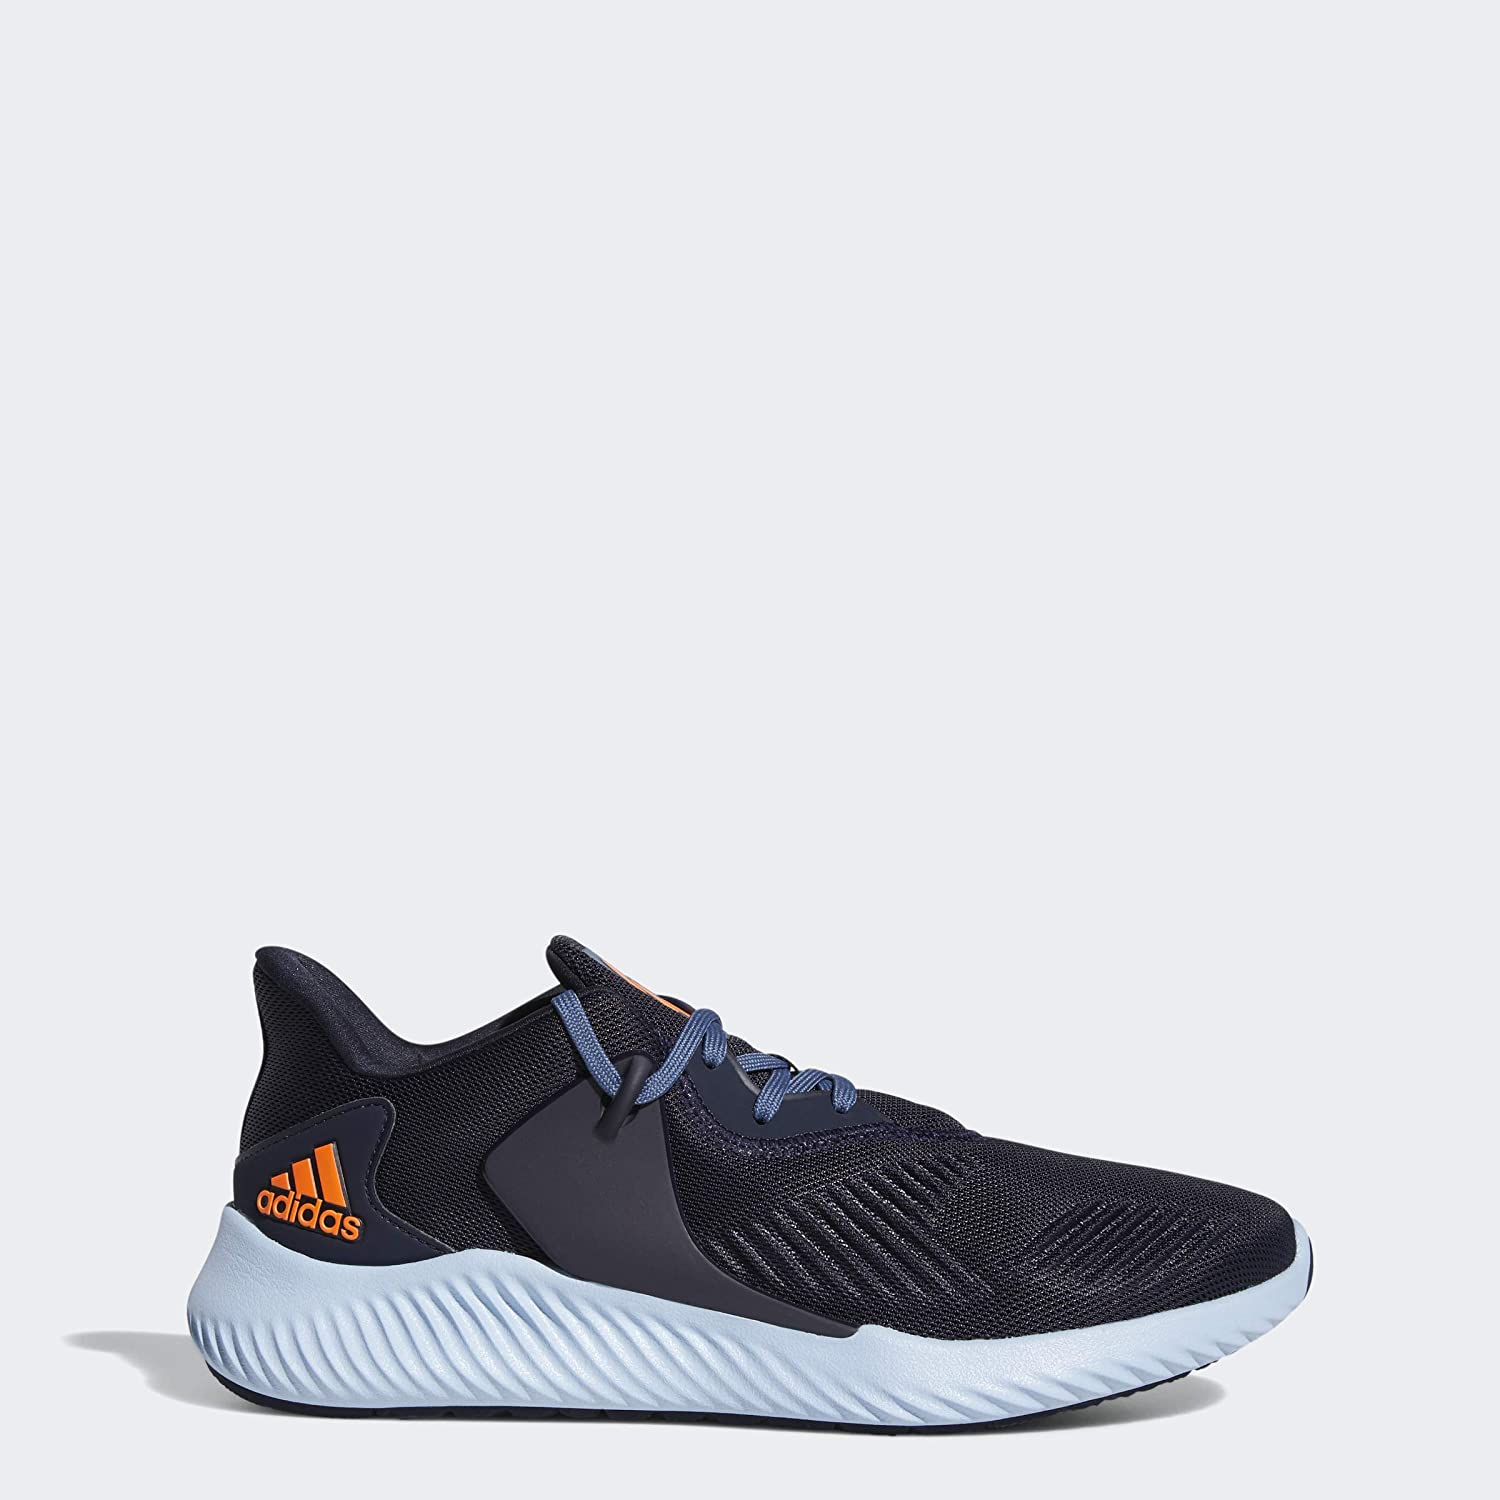 adidas Alphabounce RC 2.0 Shoes Men s